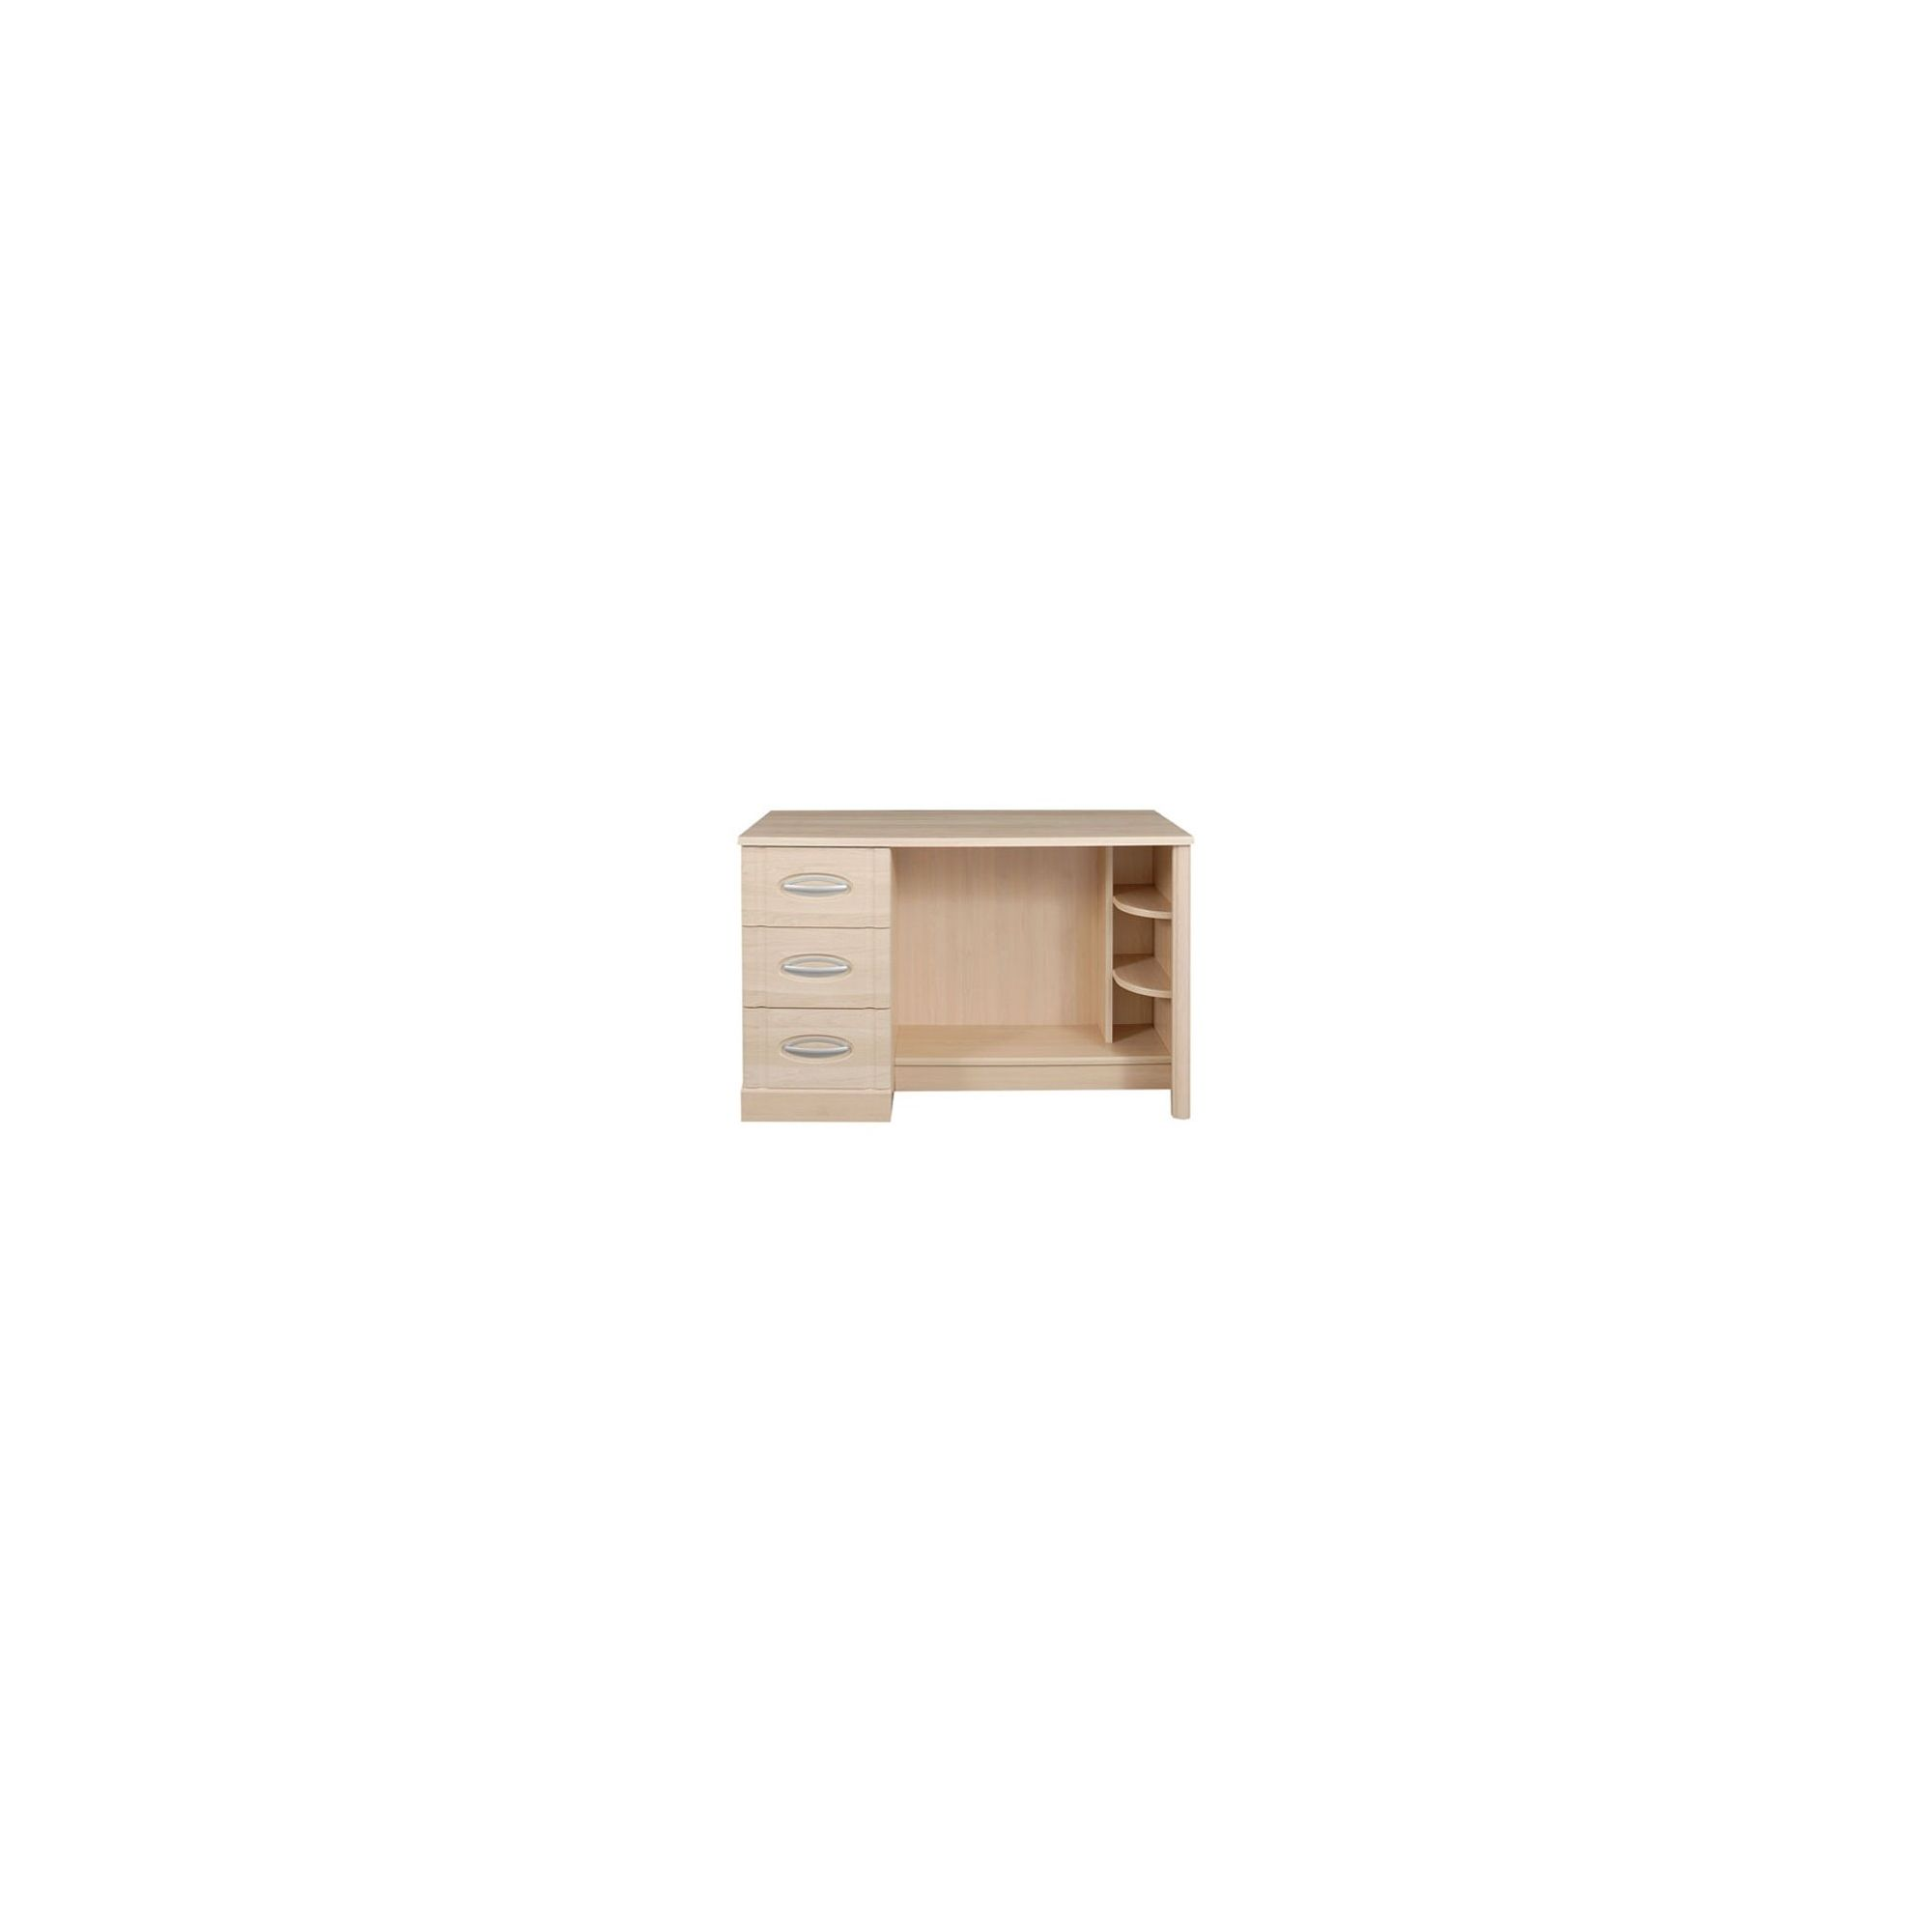 Caxton Strata Dressing Table Excluding Mirror in Pearwood at Tesco Direct